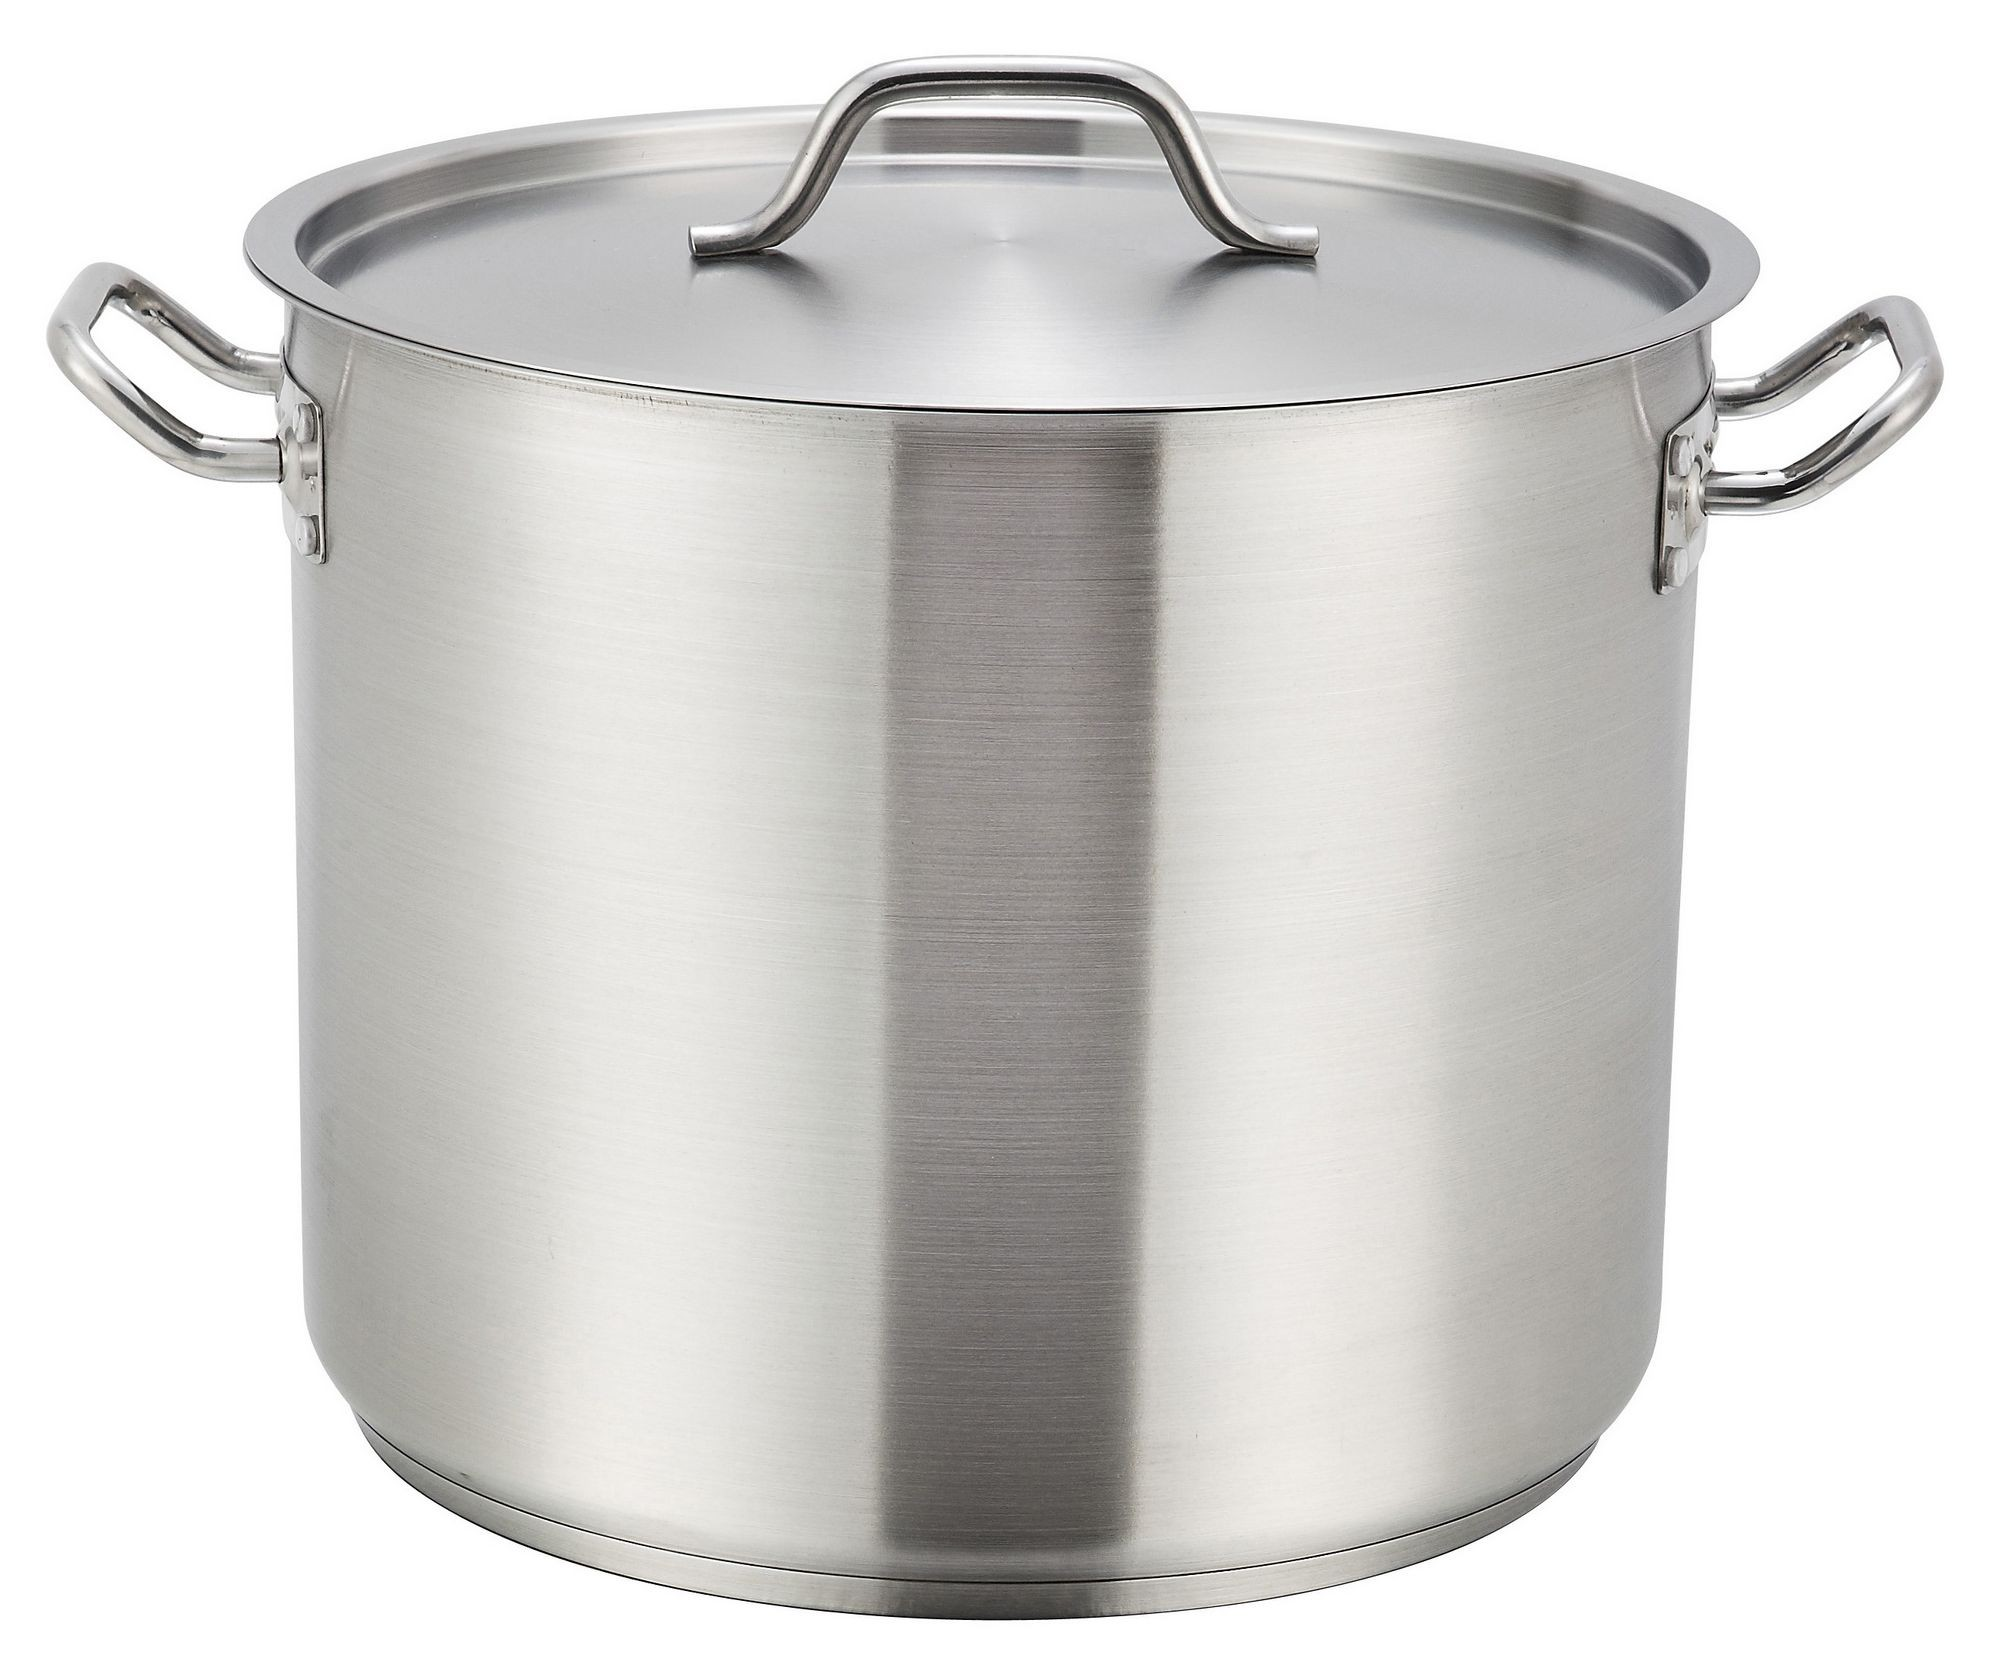 Winco SST-80 Premium Induction Stainless Steel 80 Qt. Stock Pot